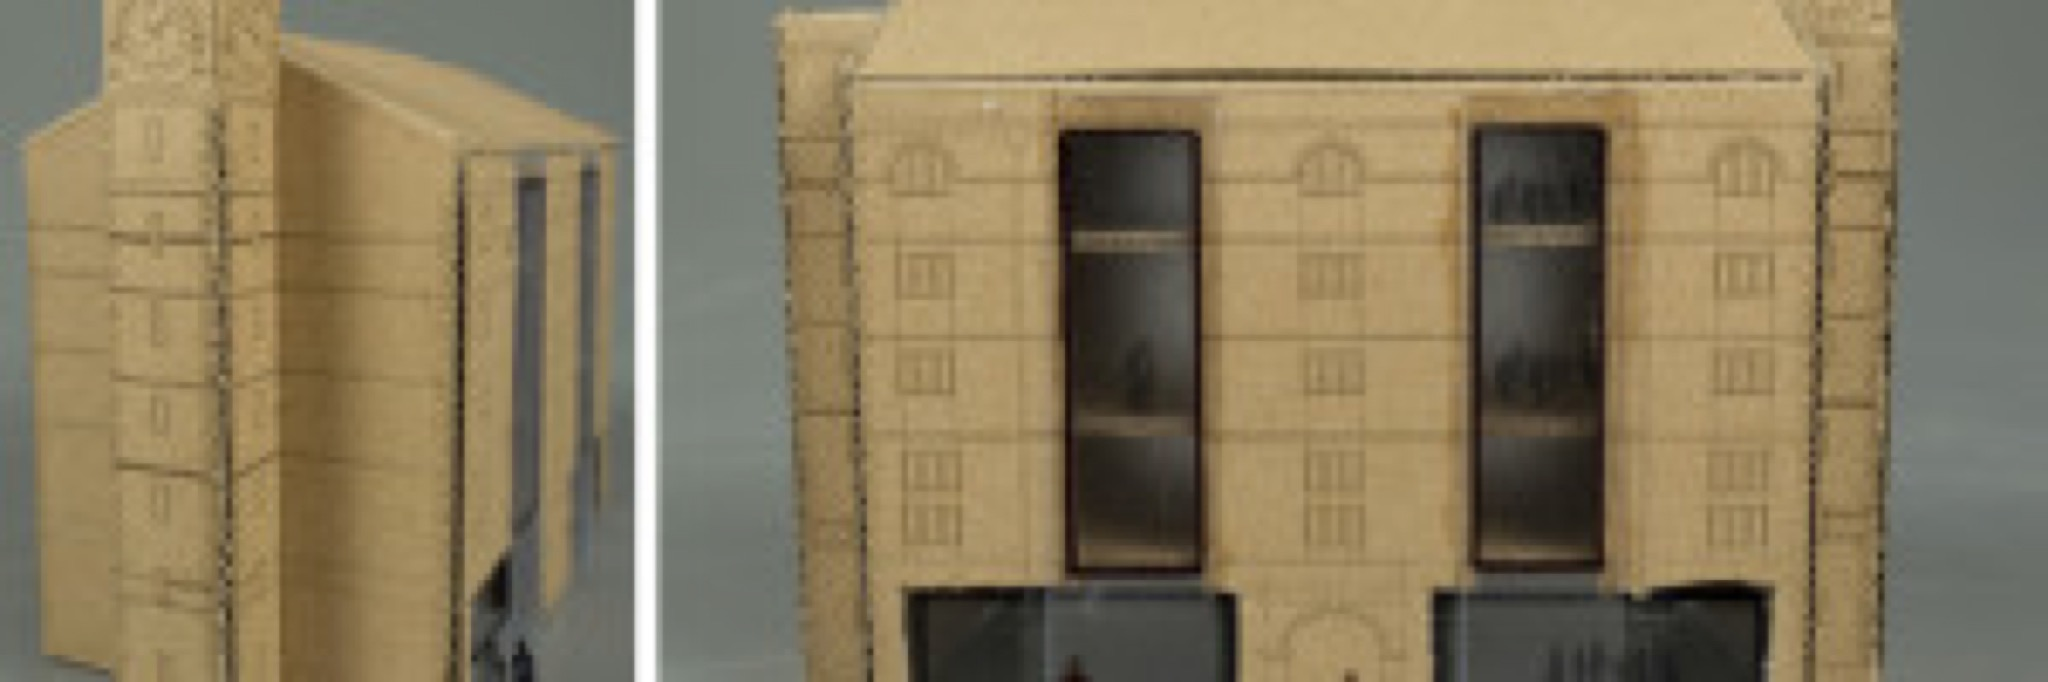 Sketch Models – Facade